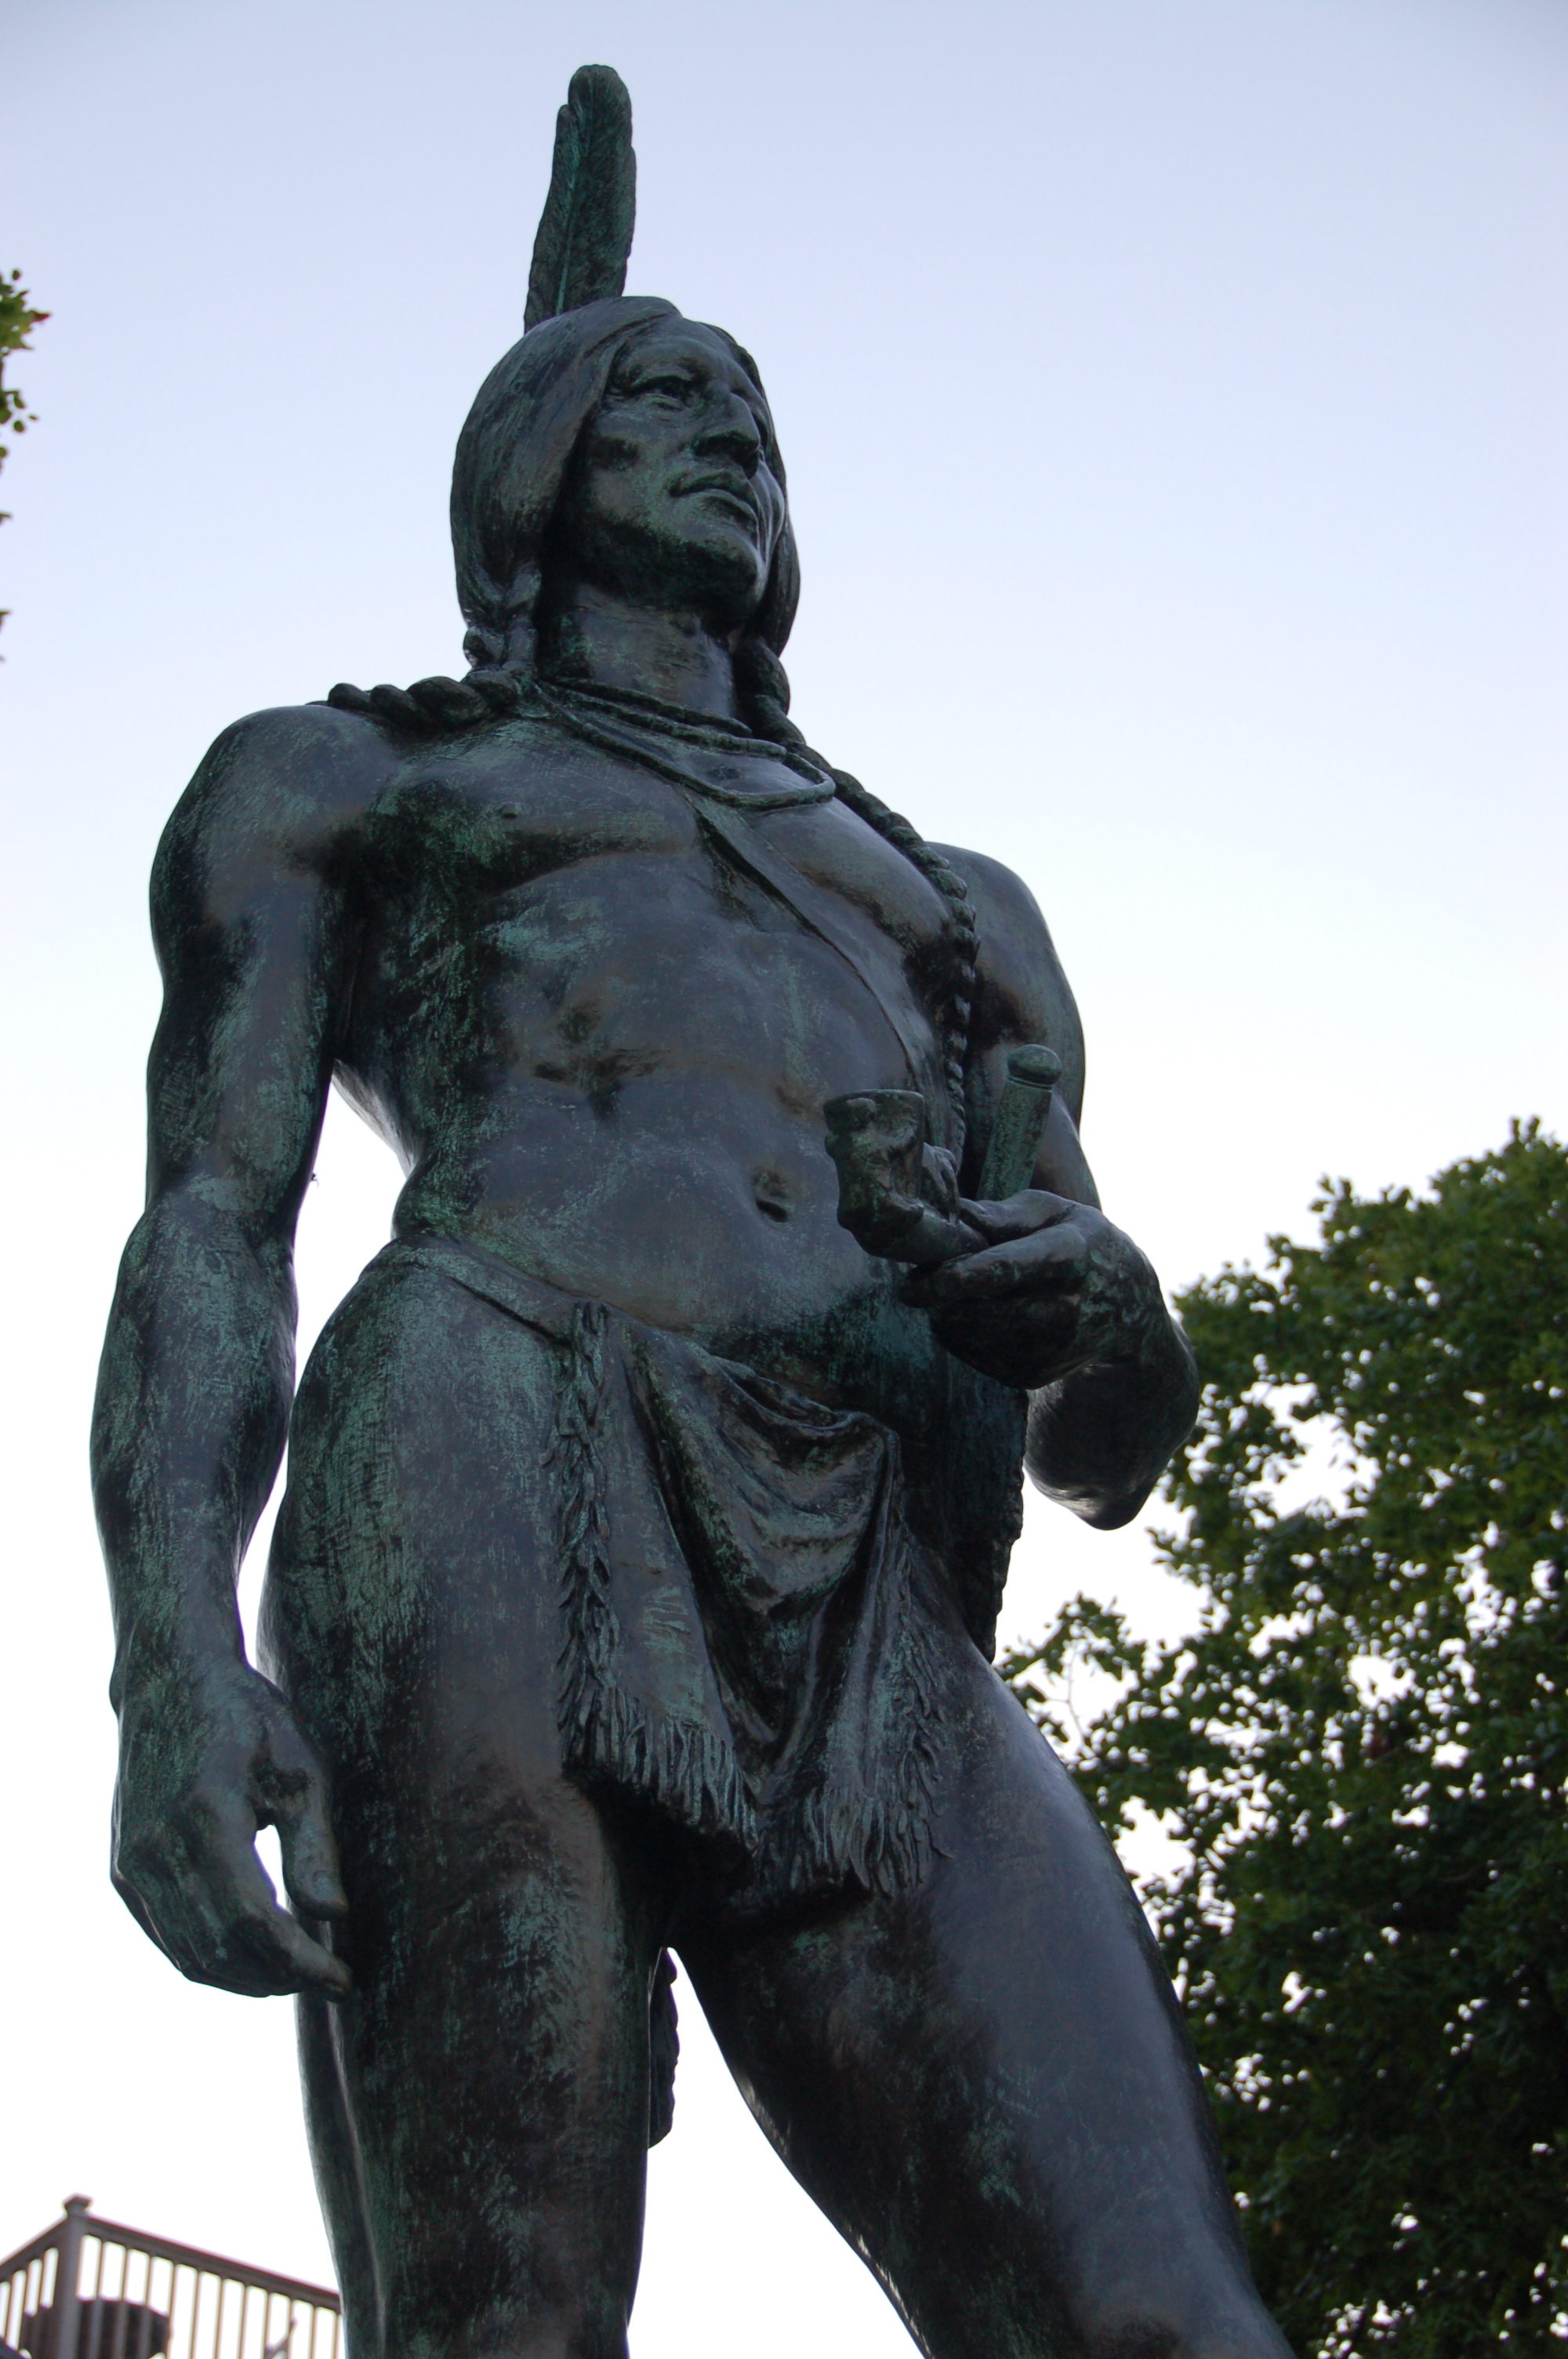 A statue of Massasoit, the leader of the Wampanoag Confederacy in the early-mid 17th Century. By Chris Devers.